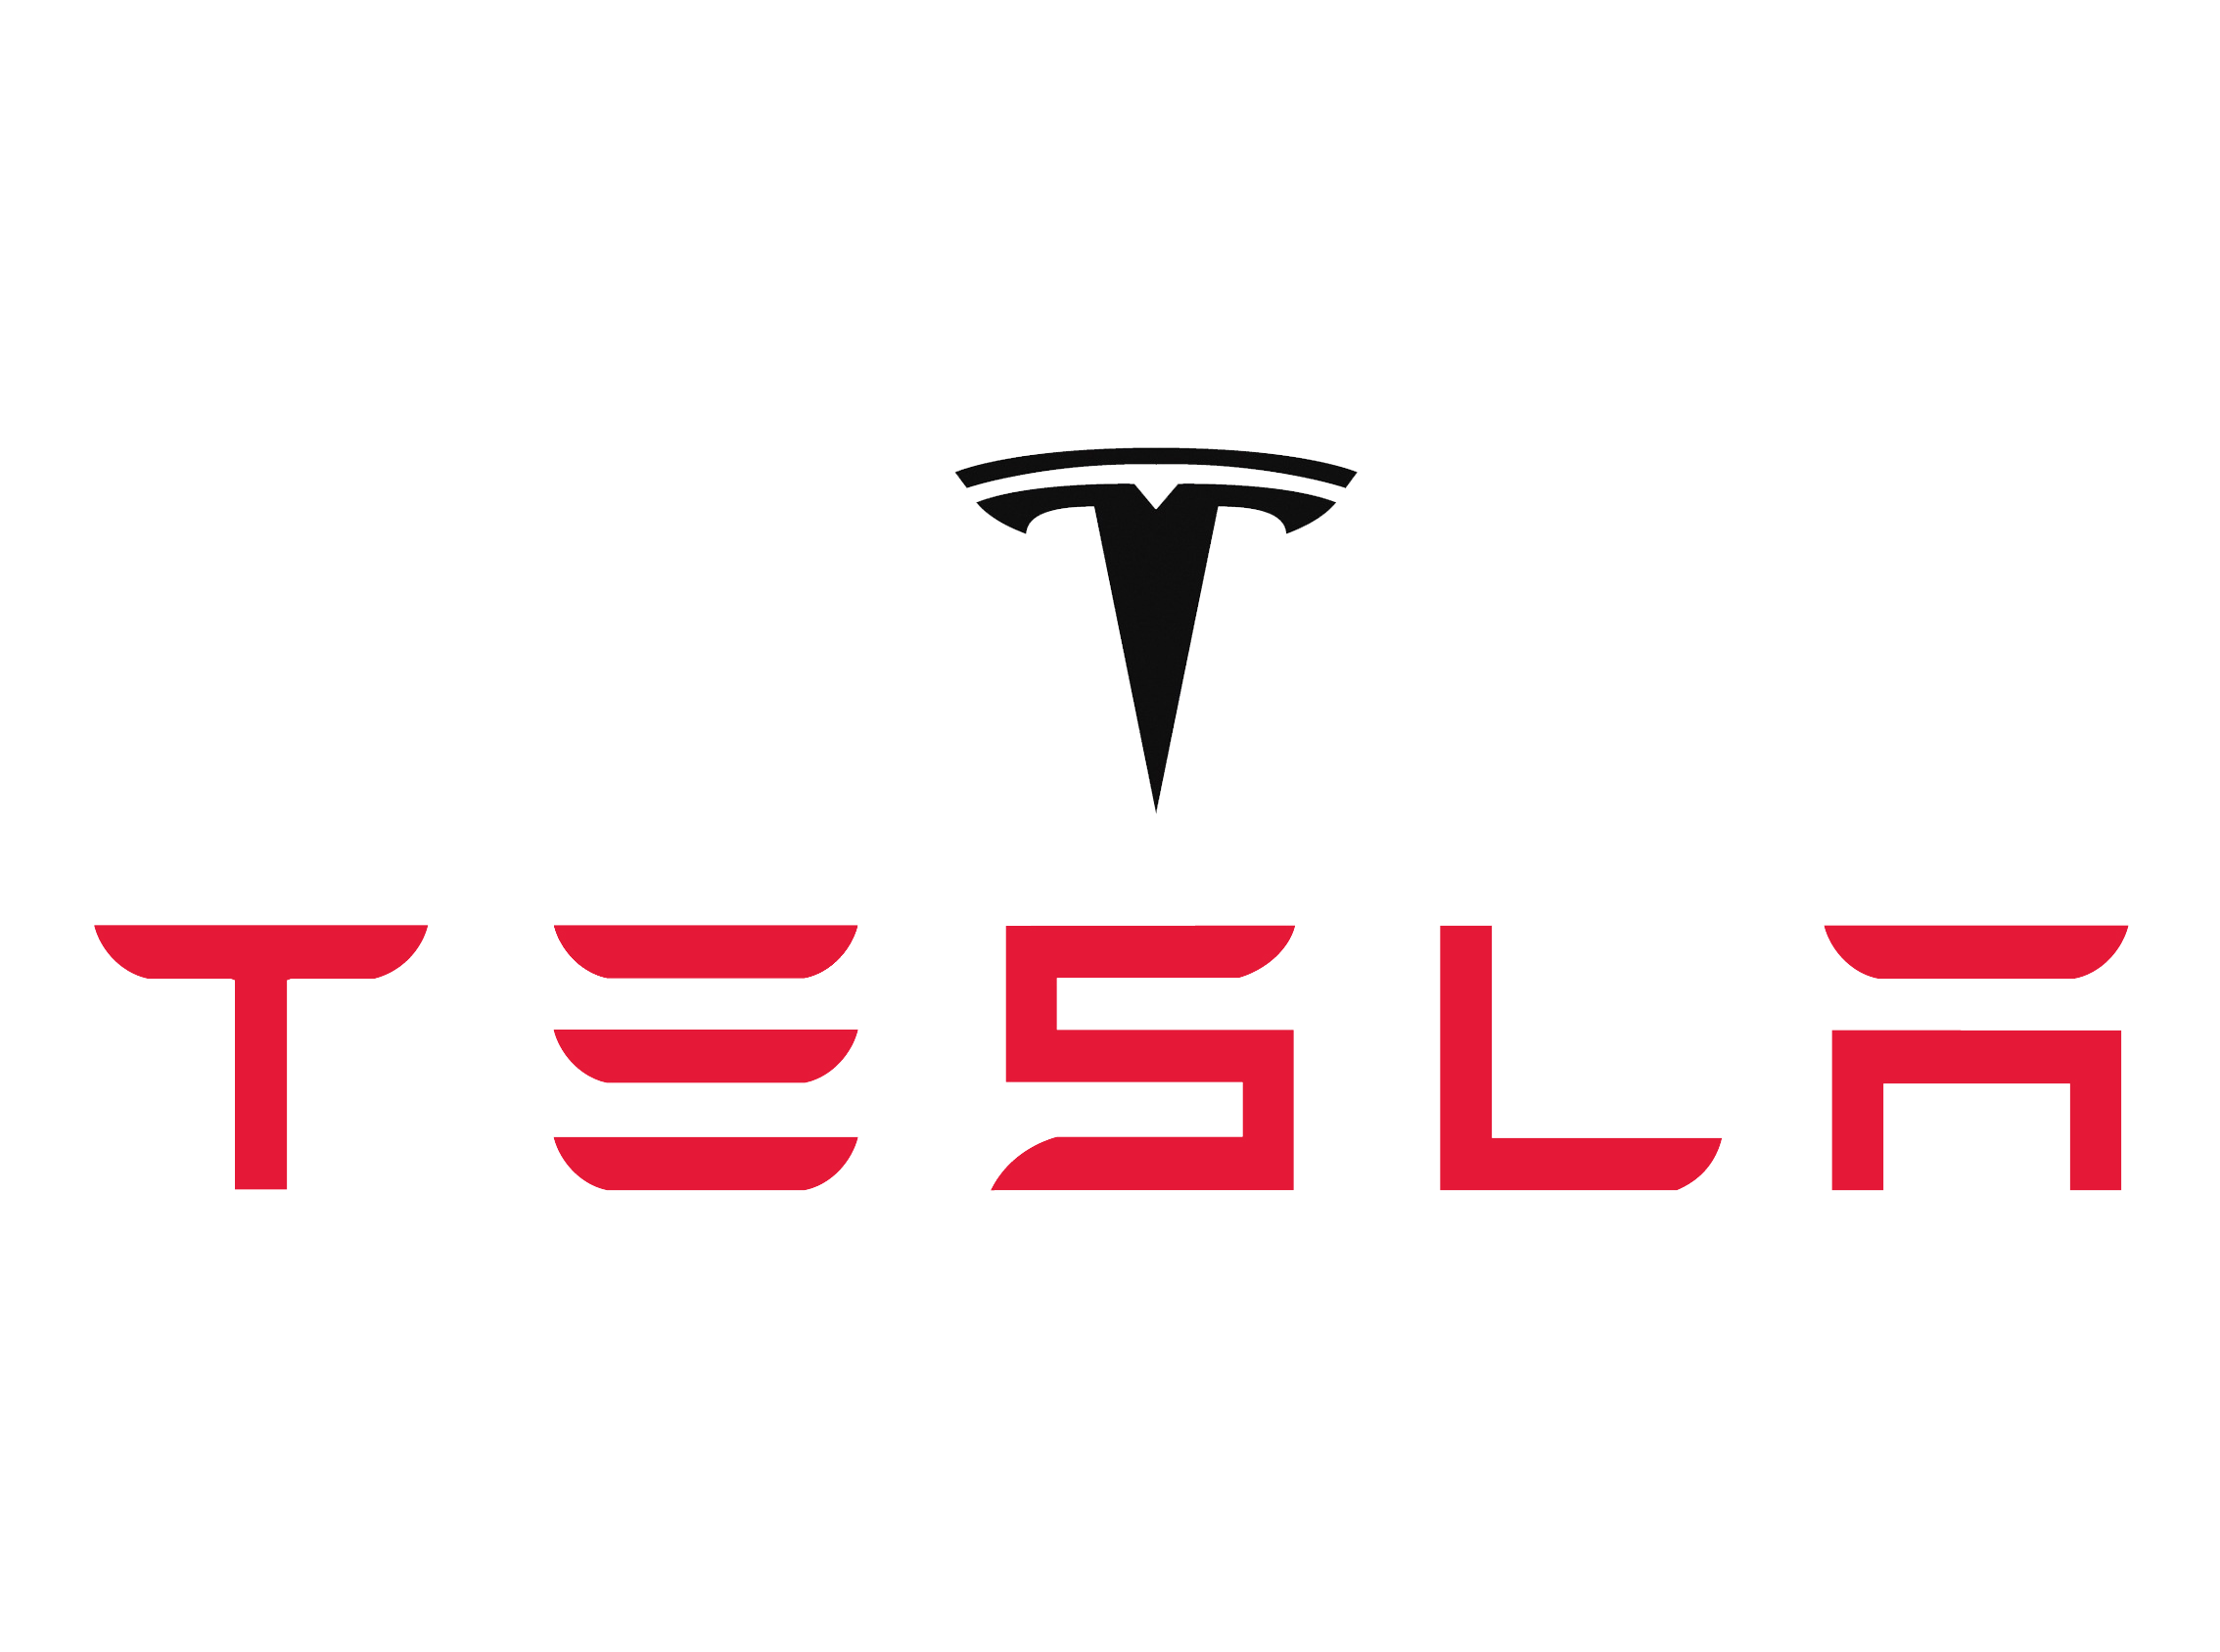 Tesla Stock Quote Tesla Inctsla Stock Message Board  Investorshub